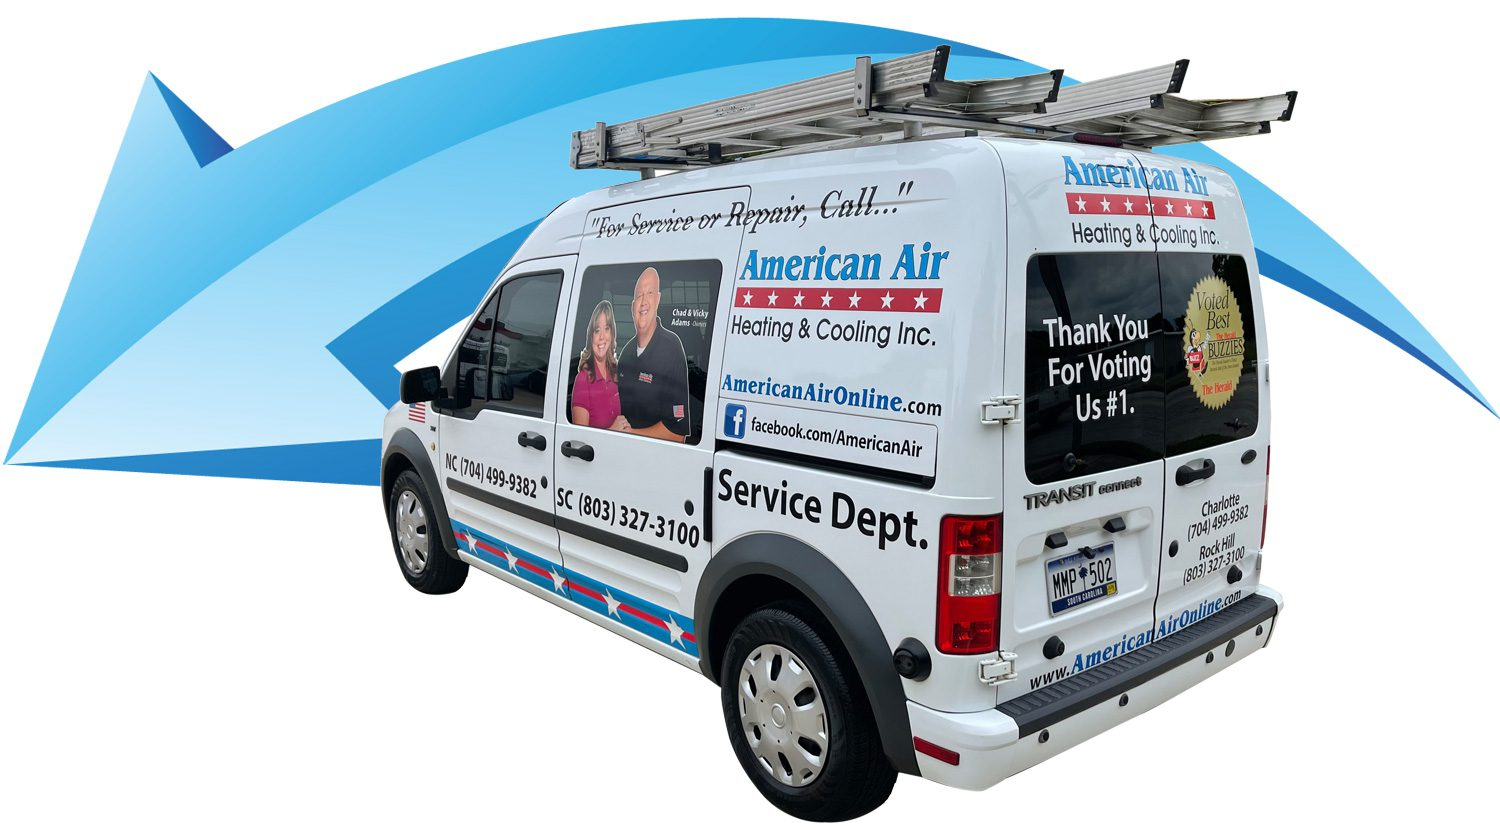 American Air Heating & Cooling   company van in front of blue arrow